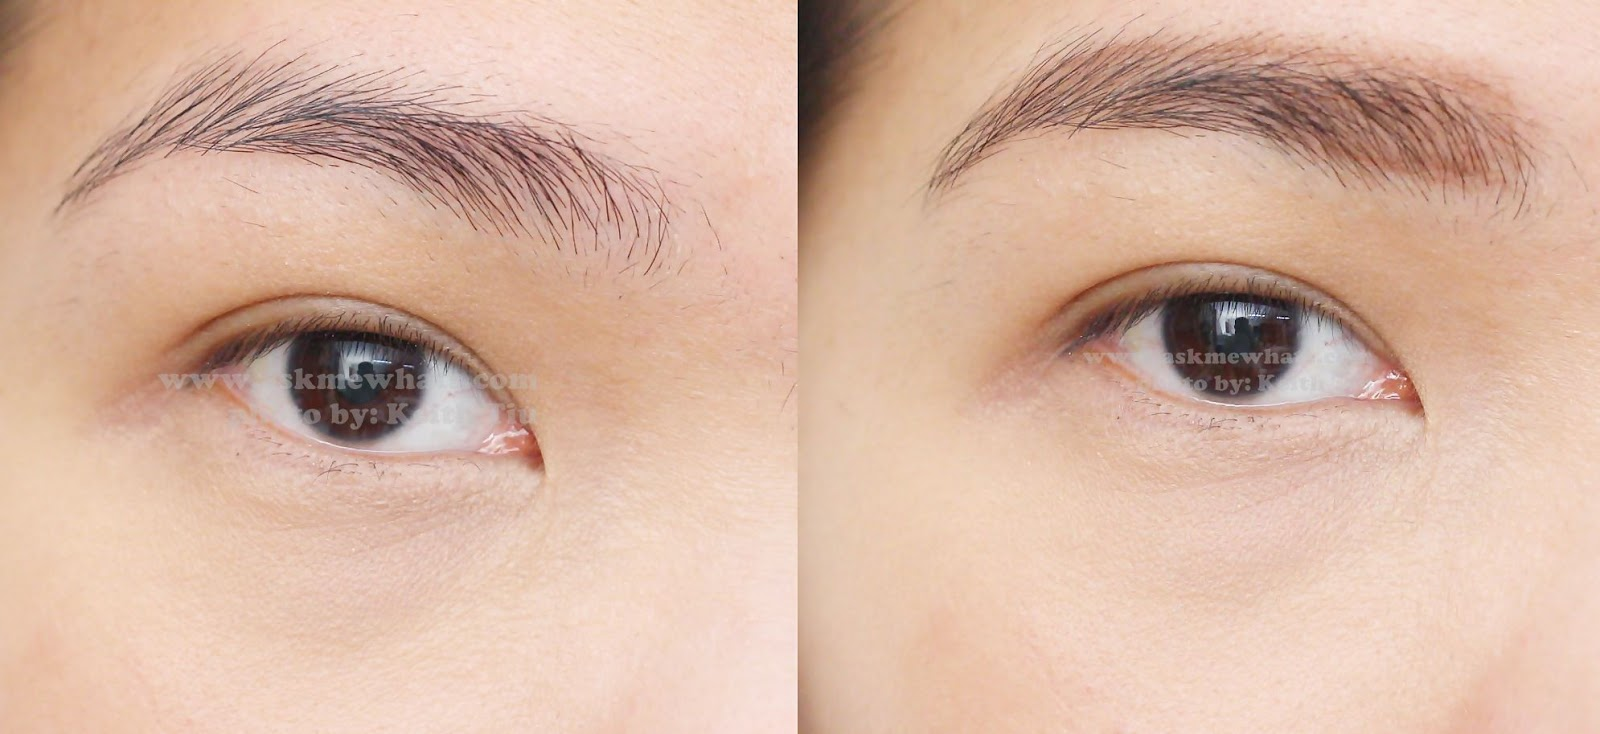 A Before And After Photo Using Etude House Easy Brow Pencil 2